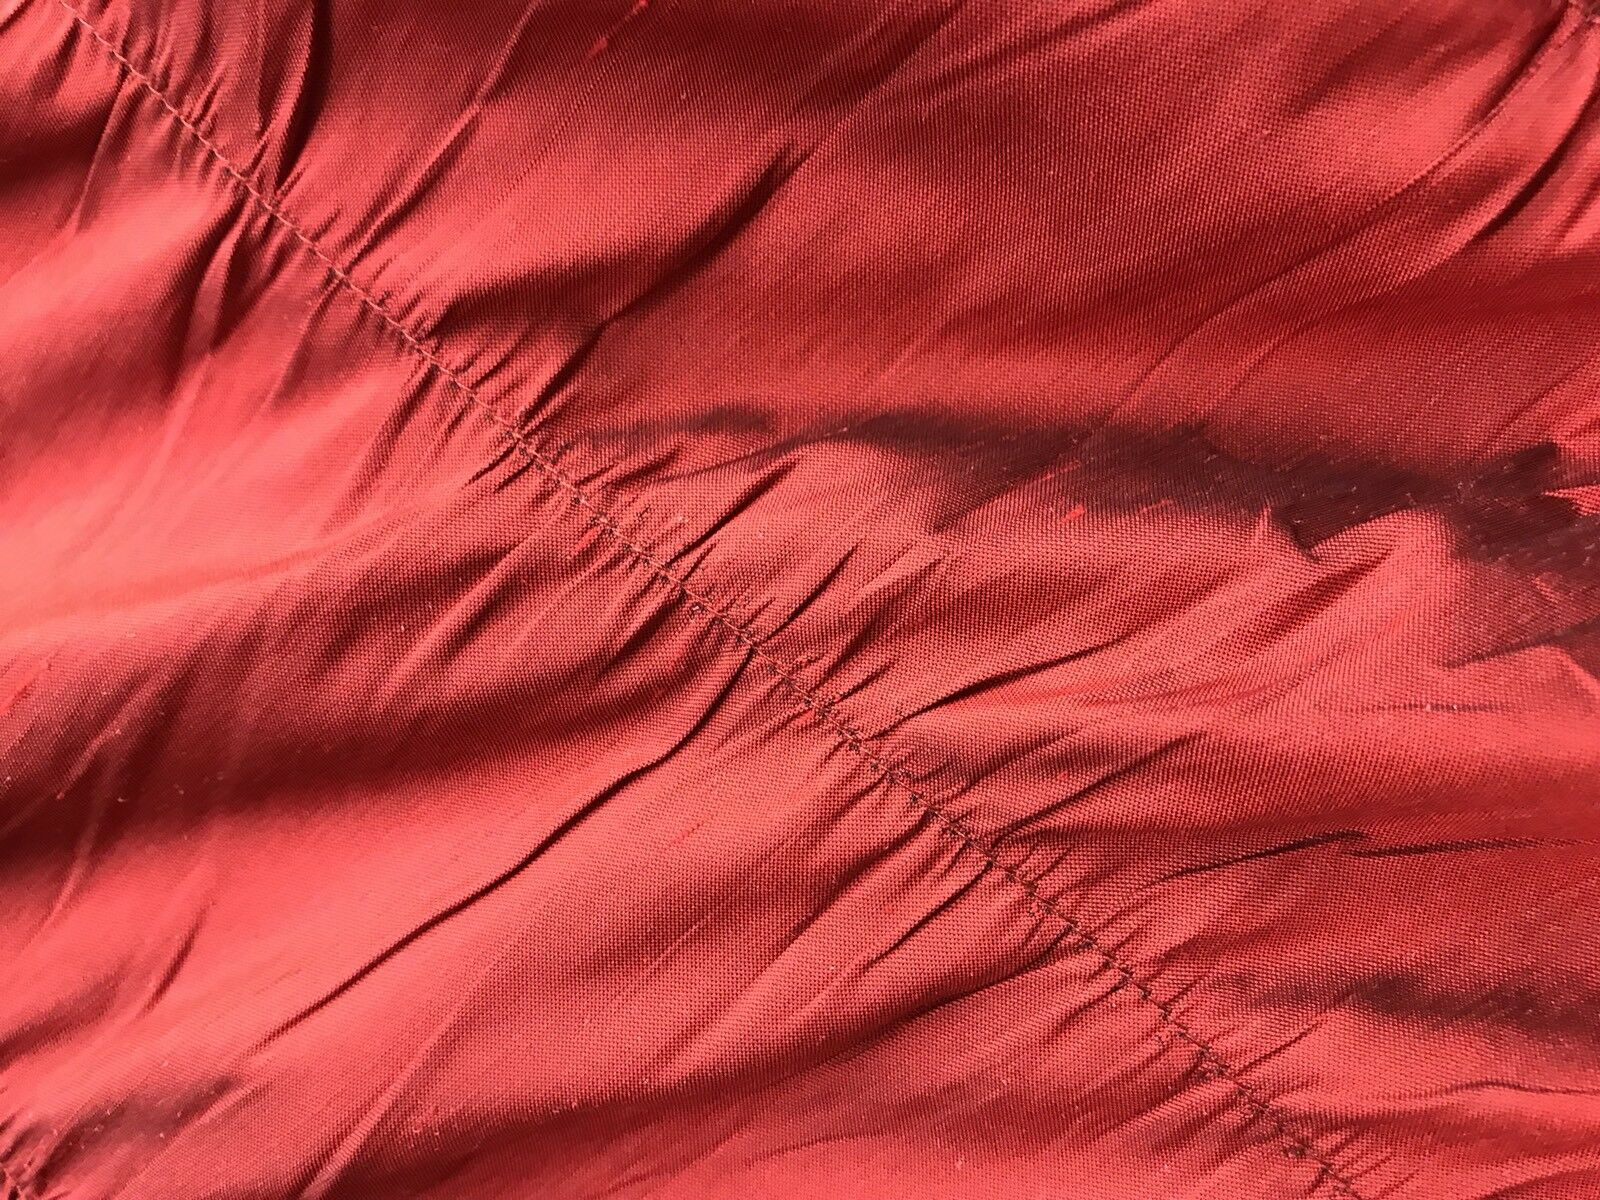 NEW! 100% Silk Taffeta Ruched And Gathered Drapery Fabric - By The Yard -Red